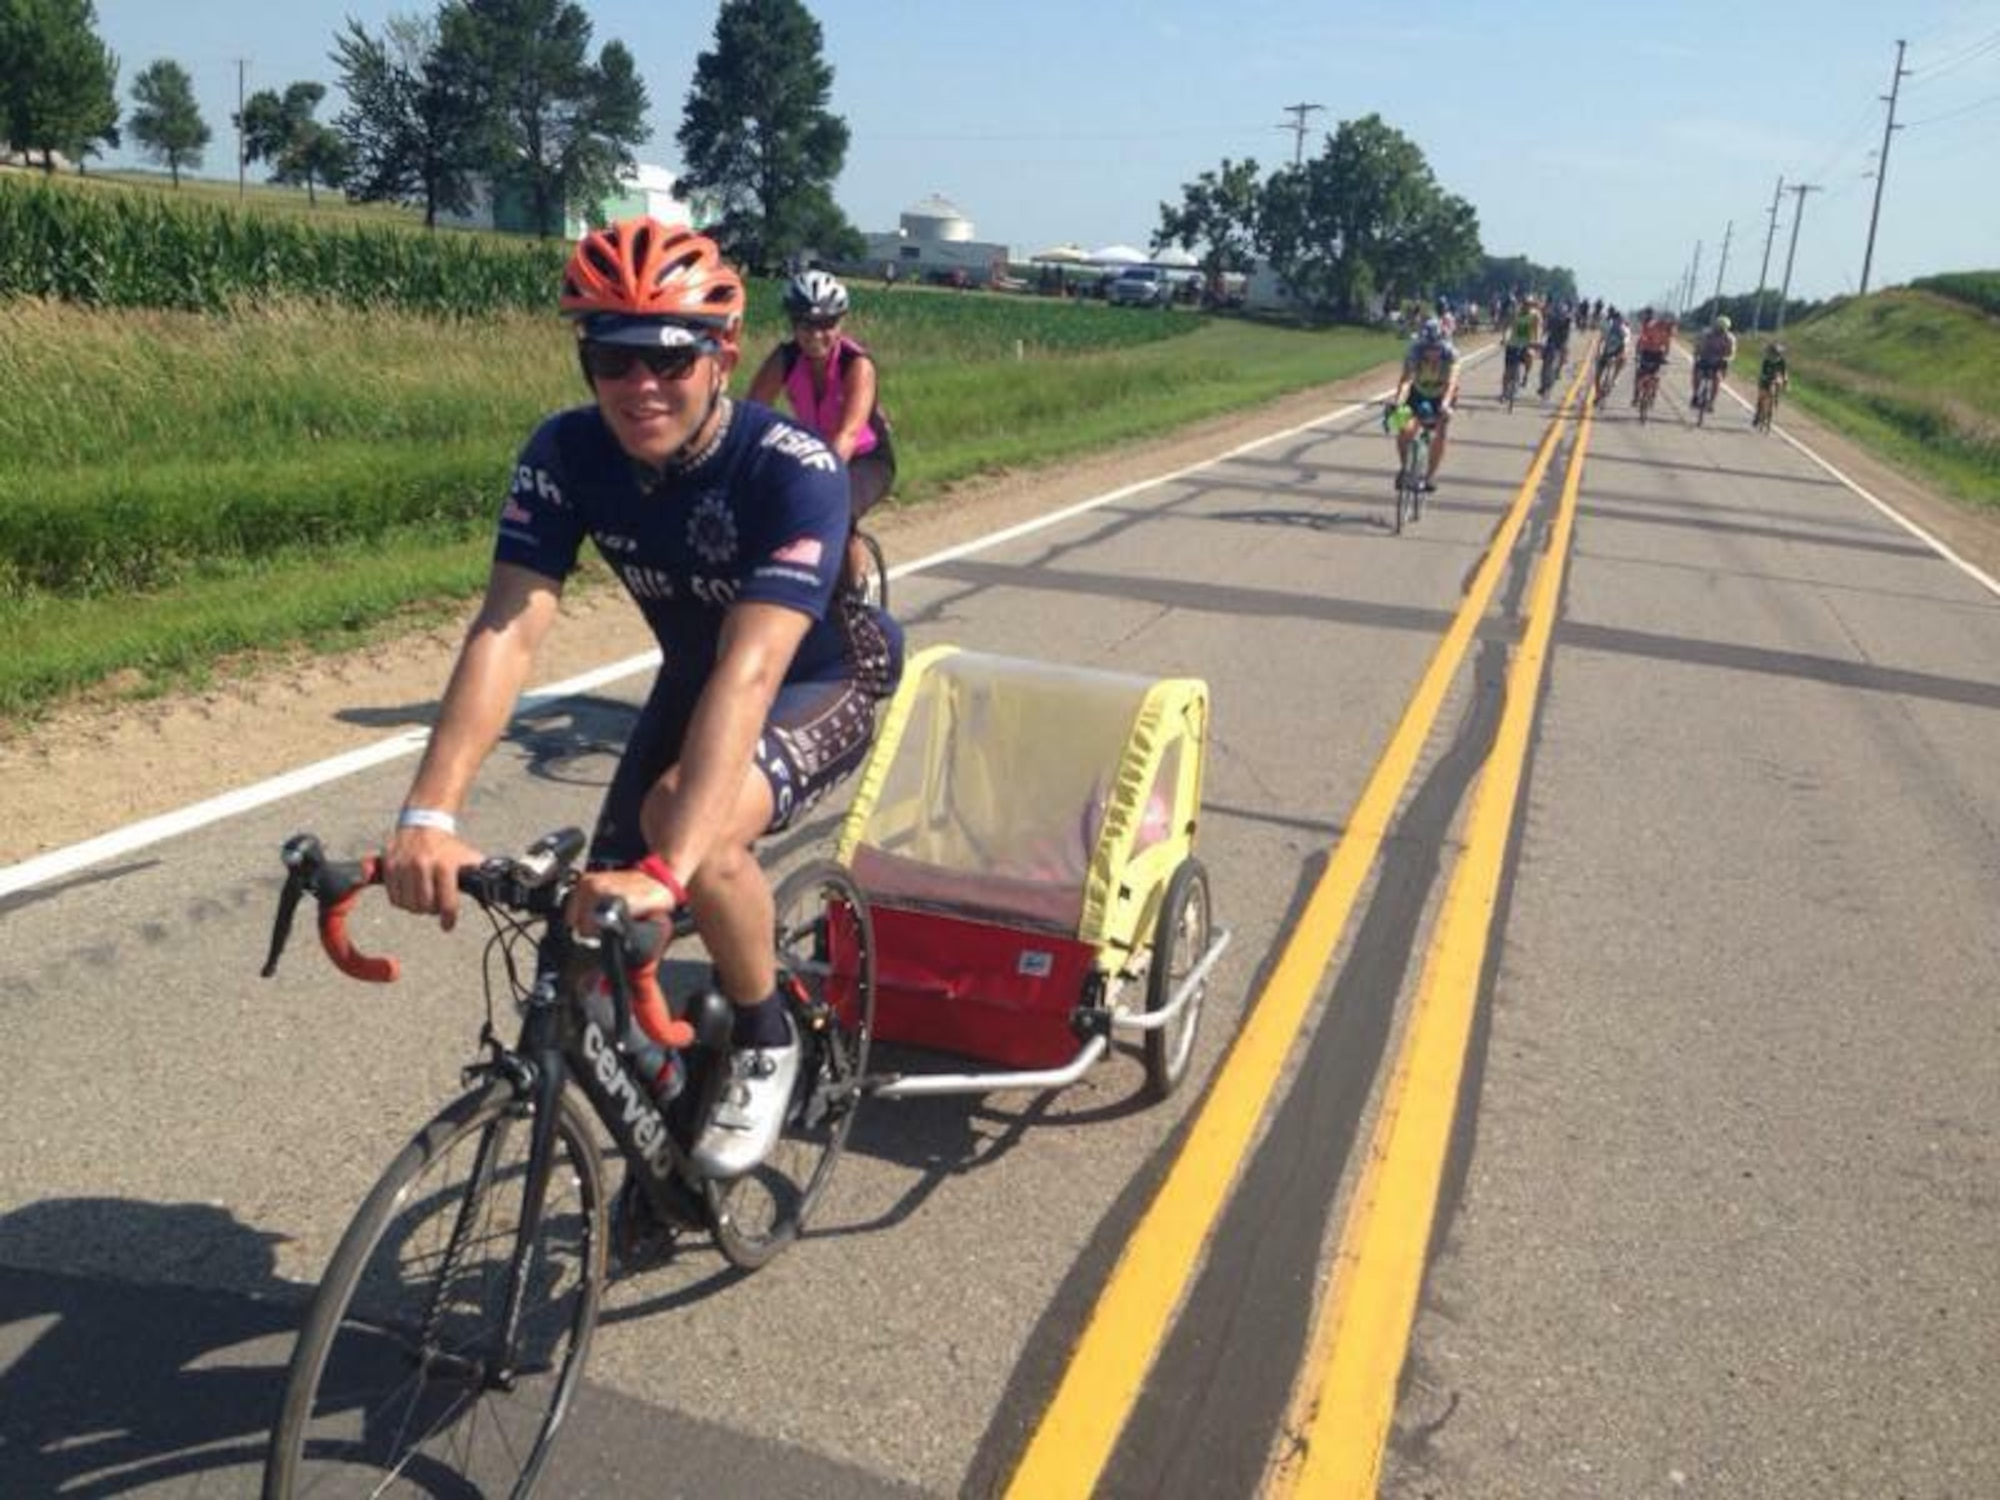 Senior Airman Jacob Pinkney, 860th Aircraft Maintenance Squadron C-17 Globemaster III crew chief and a member of the Air Force Cycling Team, pulls a toddler in a stroller carrier to give the child's mother a break during the Register's Annual Great Bike Ride Across Iowa July 26, 2017. During the RAGBRAI, AFCT members provided assistance to more than 5,000 cyclists. The team works to promote the Air Force by interacting with the American public at cycling events across the United States. (Courtesy Photo)